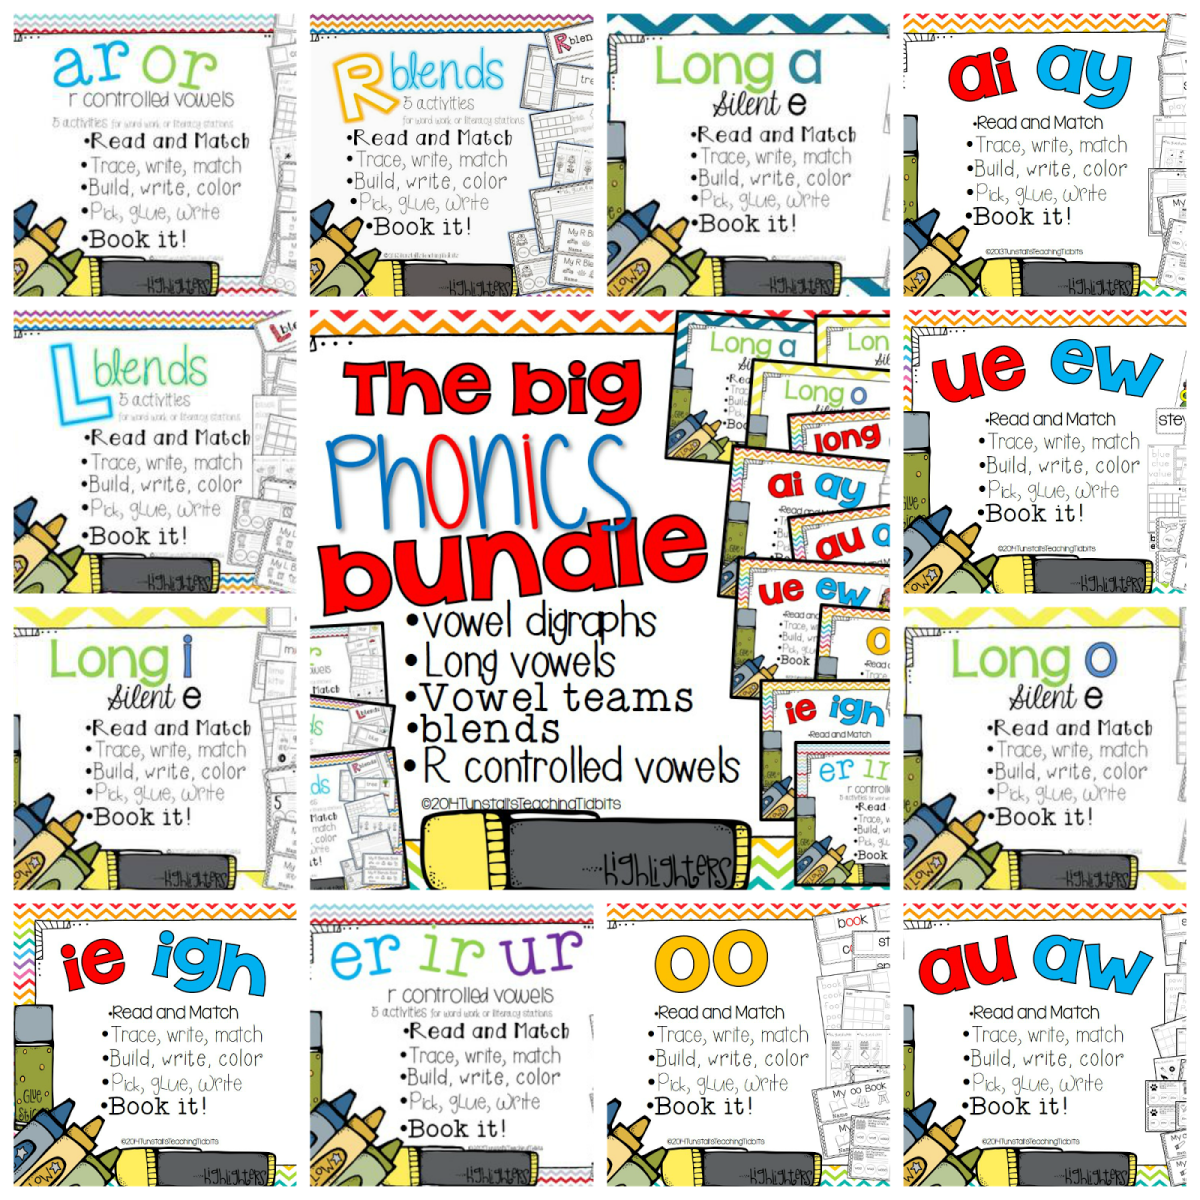 http://www.teacherspayteachers.com/Product/The-Big-Phonics-Bundle-Spelling-and-Phonics-Interactive-Activities-1172712